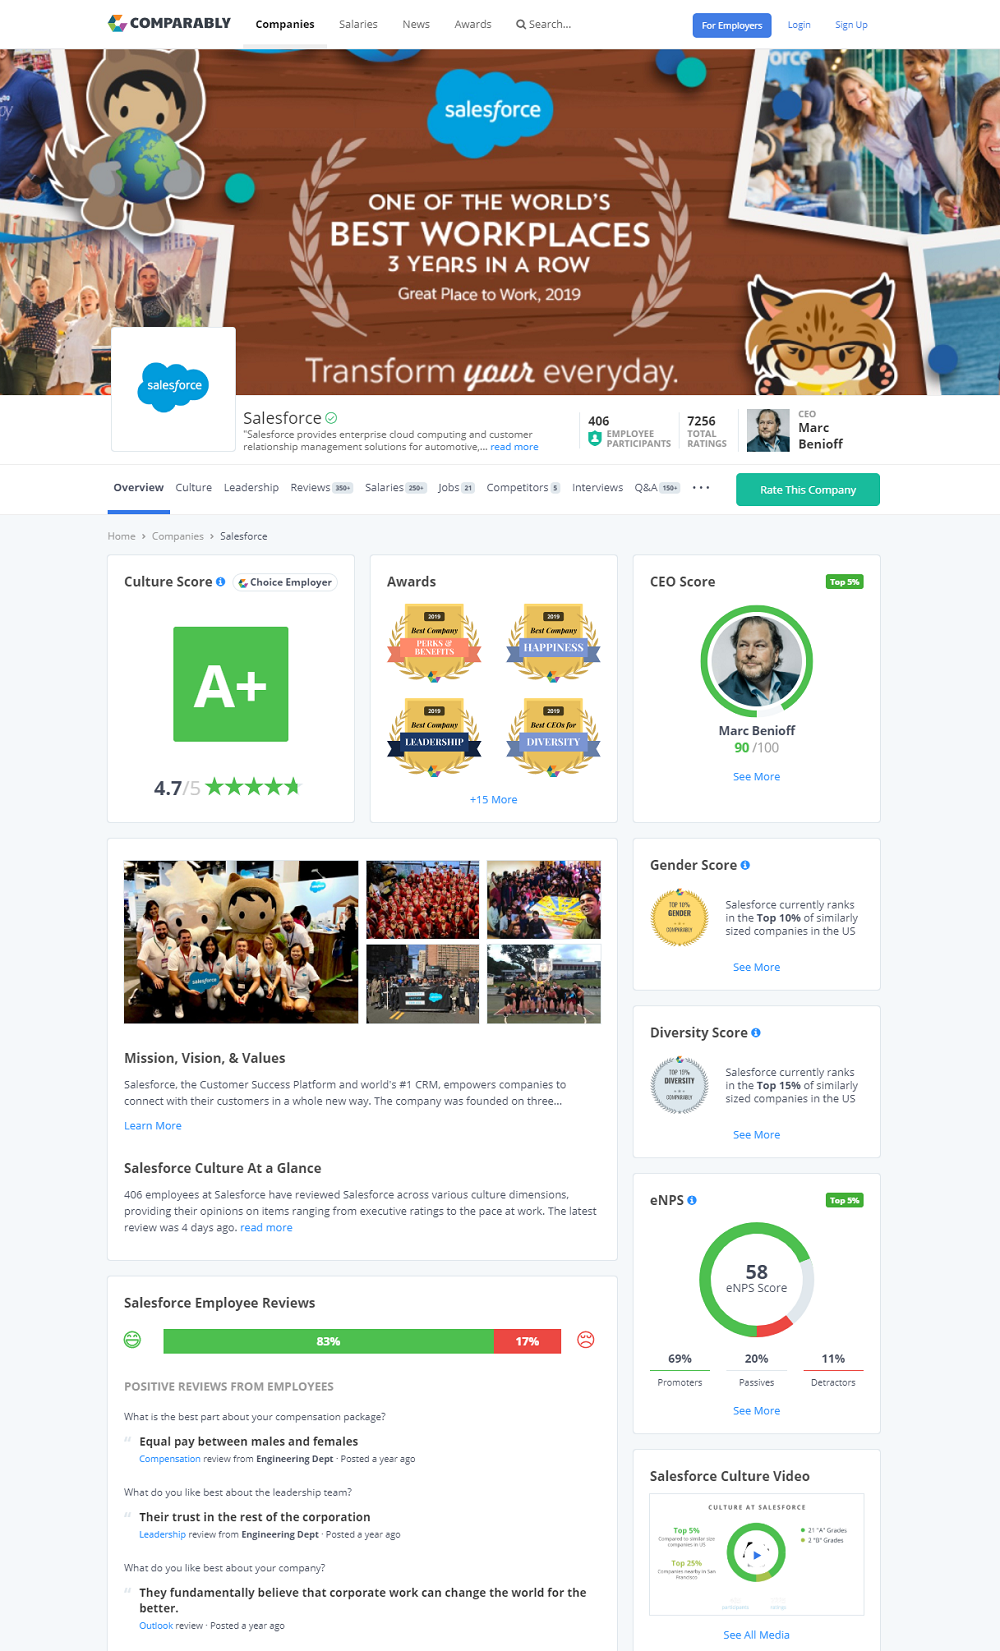 Salesforce employer ratings and reviews comparably page